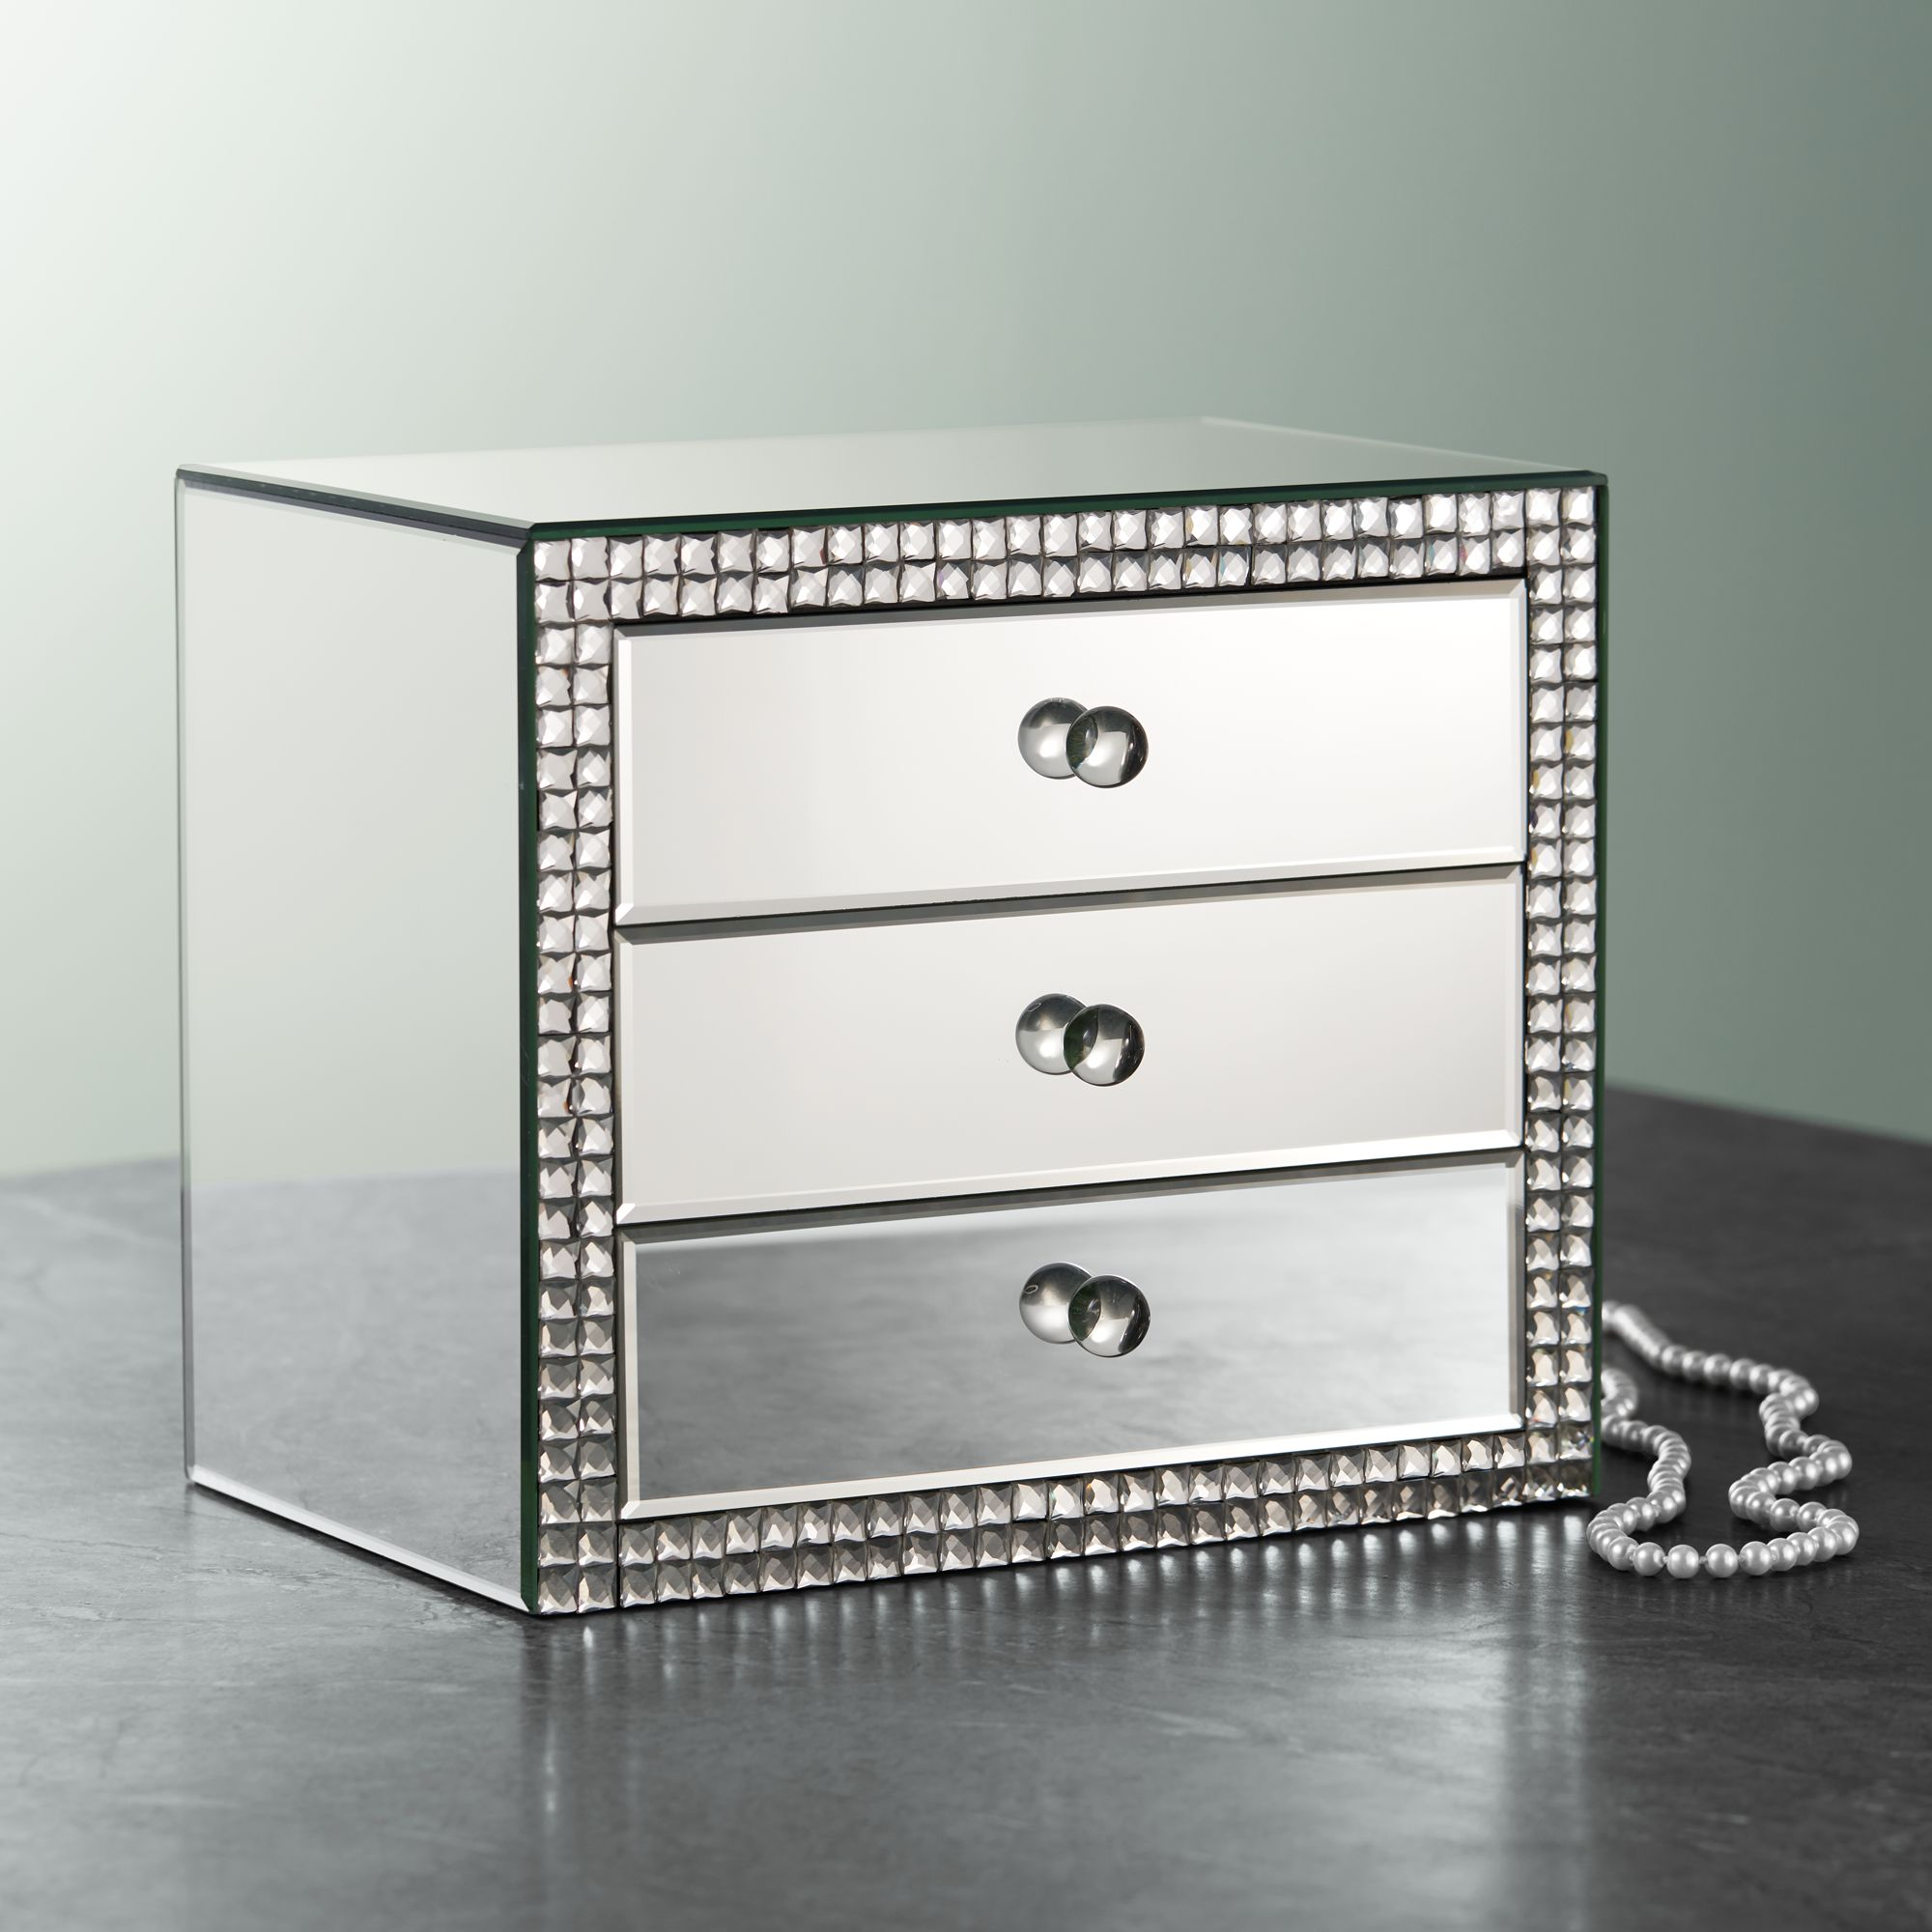 Lorain 3 Drawer Mirrored Jewelry Box